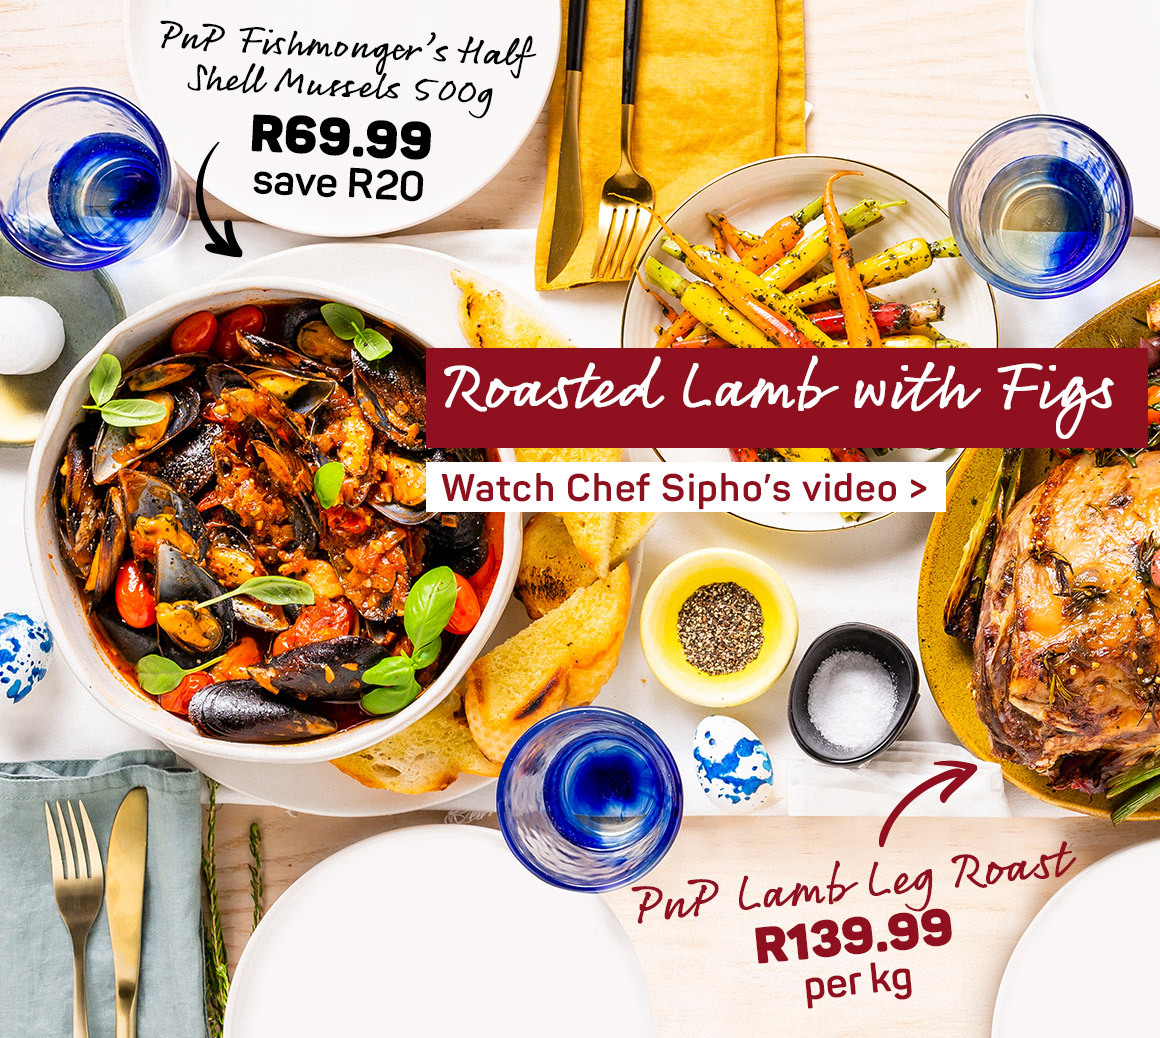 Roasted lamb with figs. Watch Chef Sipho's video